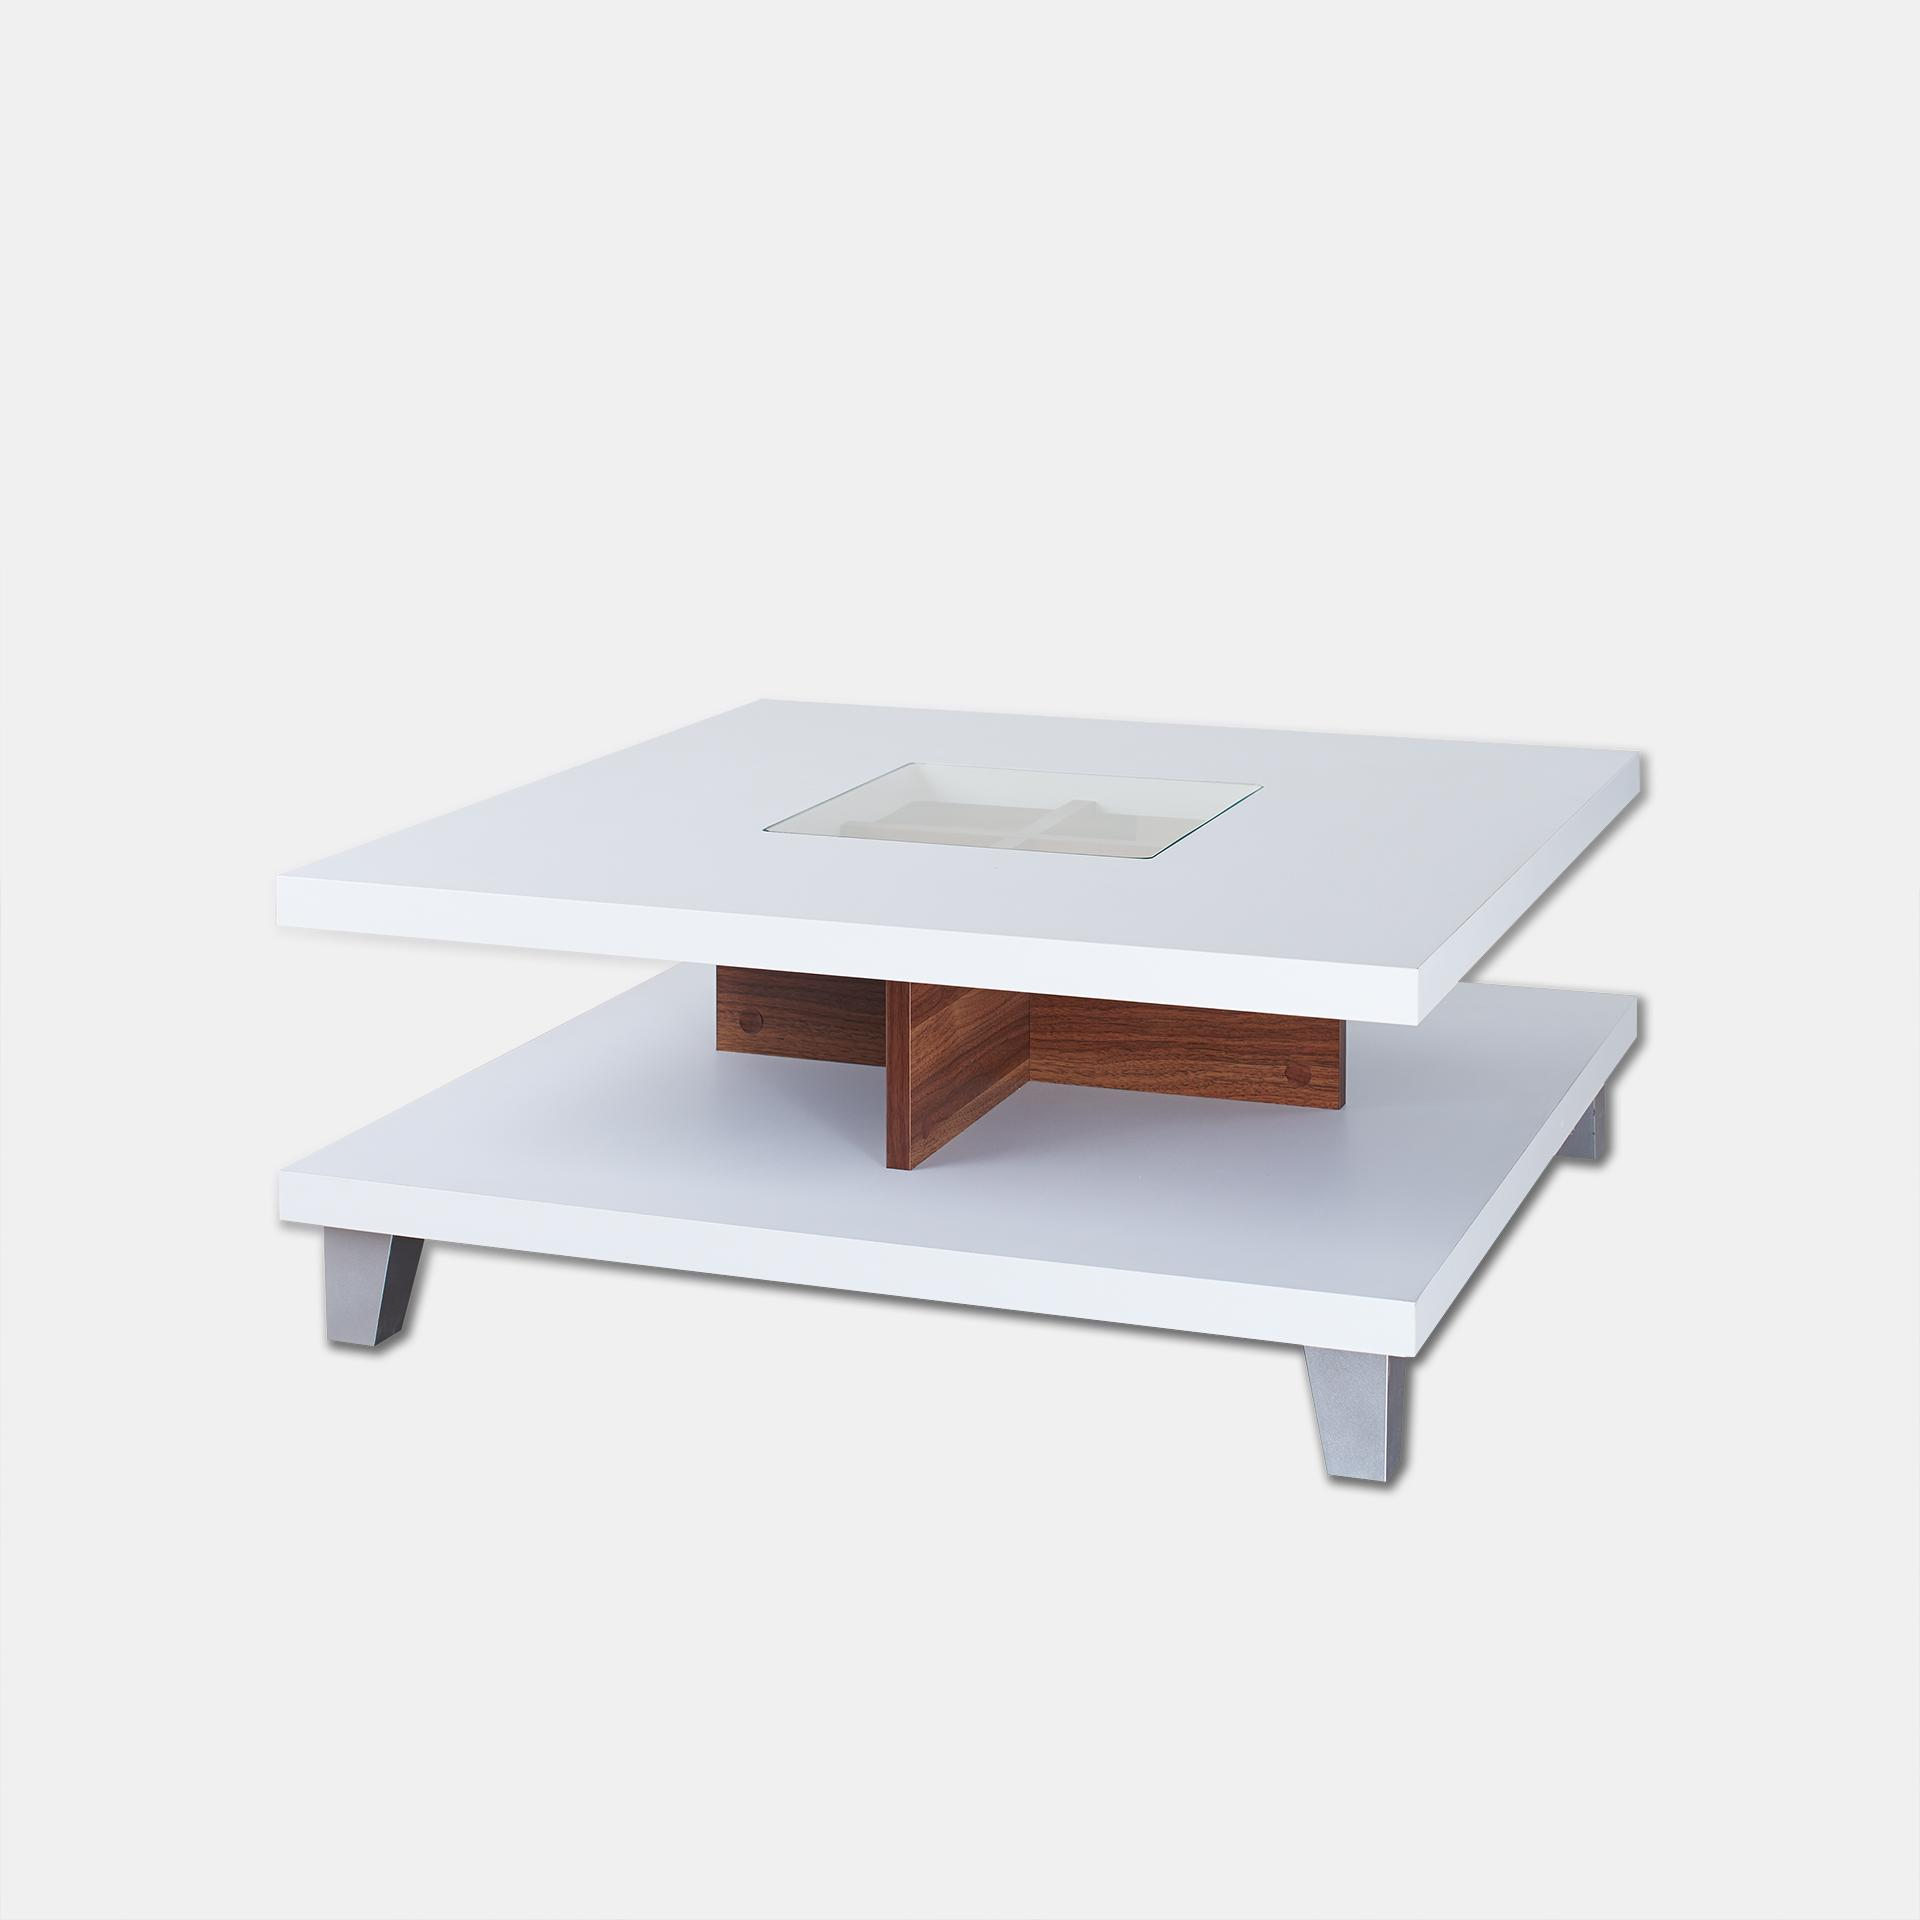 Furniture Of America Lendon Square Coffee Table White Coat Stands